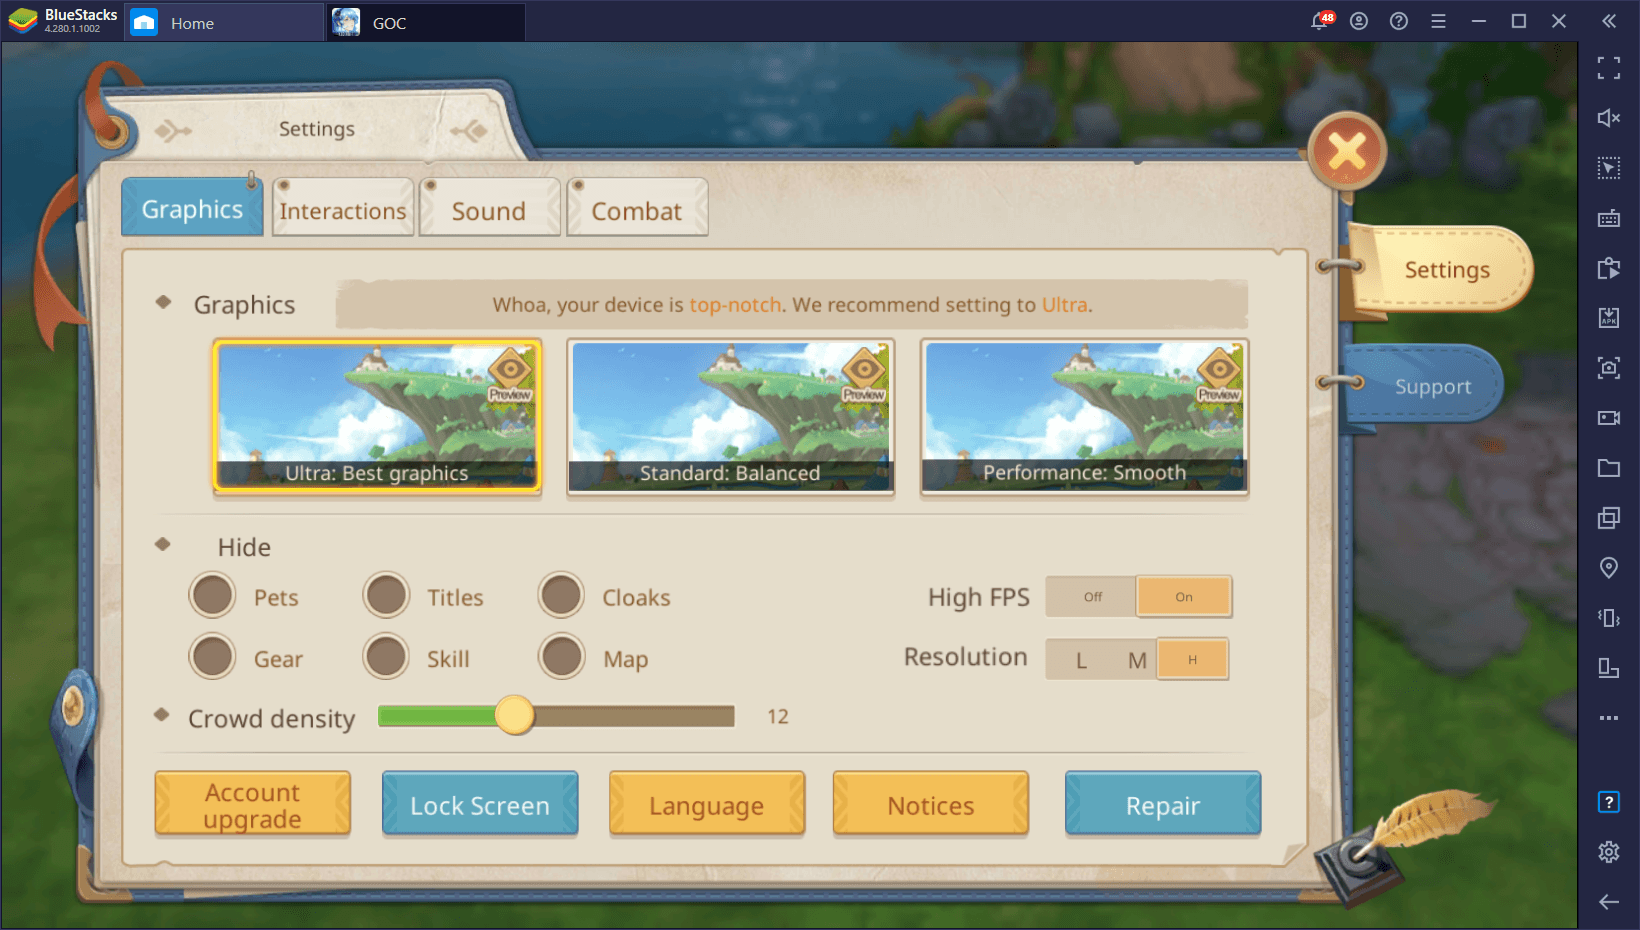 Guardians of Cloudia – How to Use BlueStacks' Tools to Your Advantage in This Mobile MMORPG